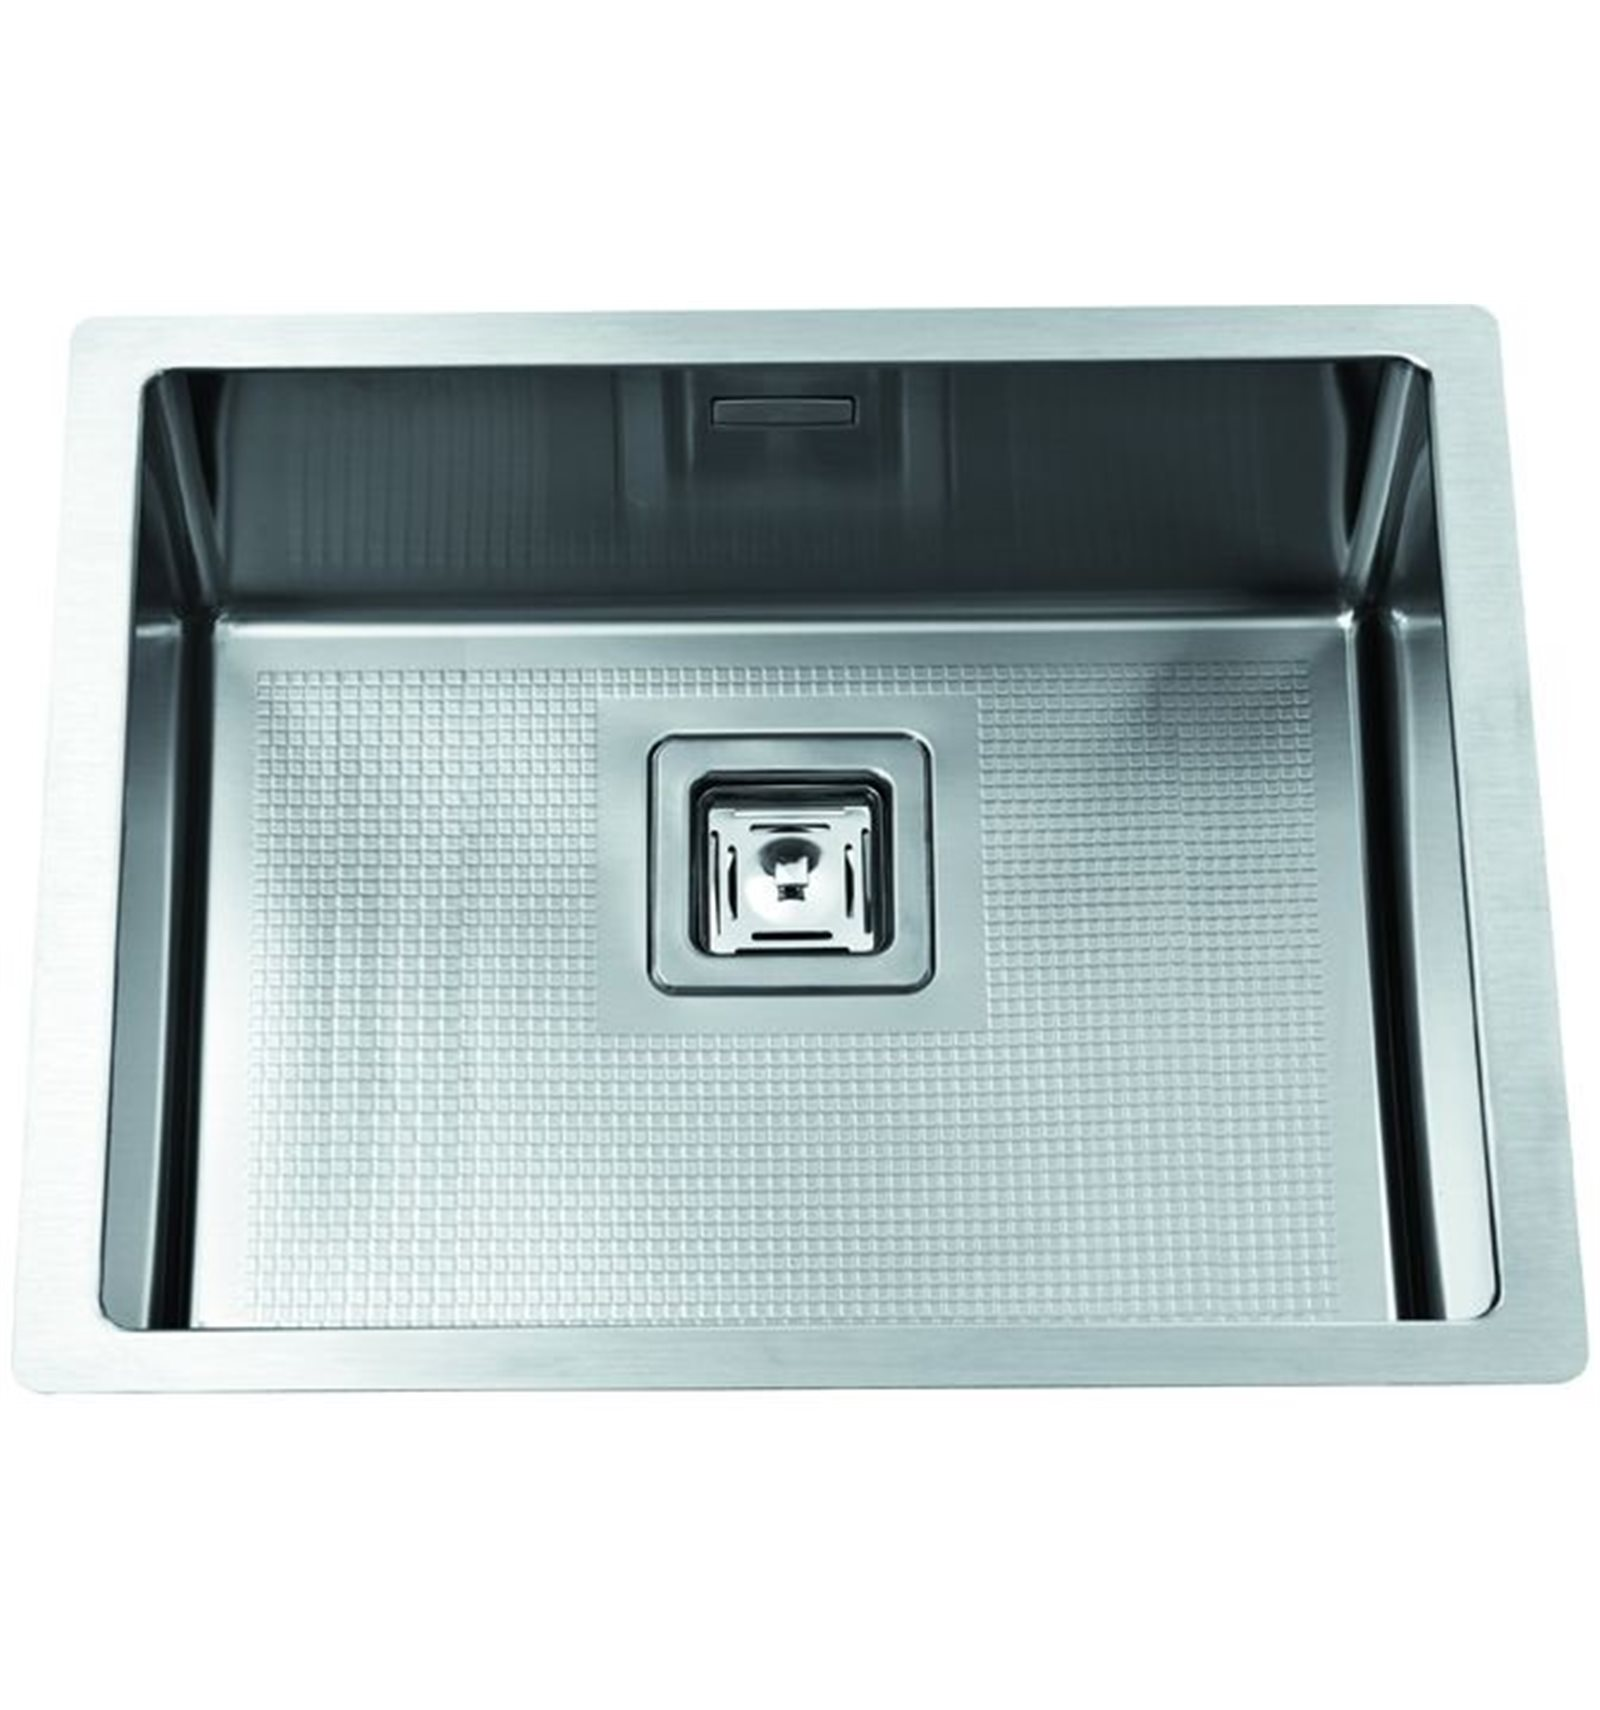 colony kitchen bowl sink b sinks mount top single hole kitchens inch in ada stainless steel